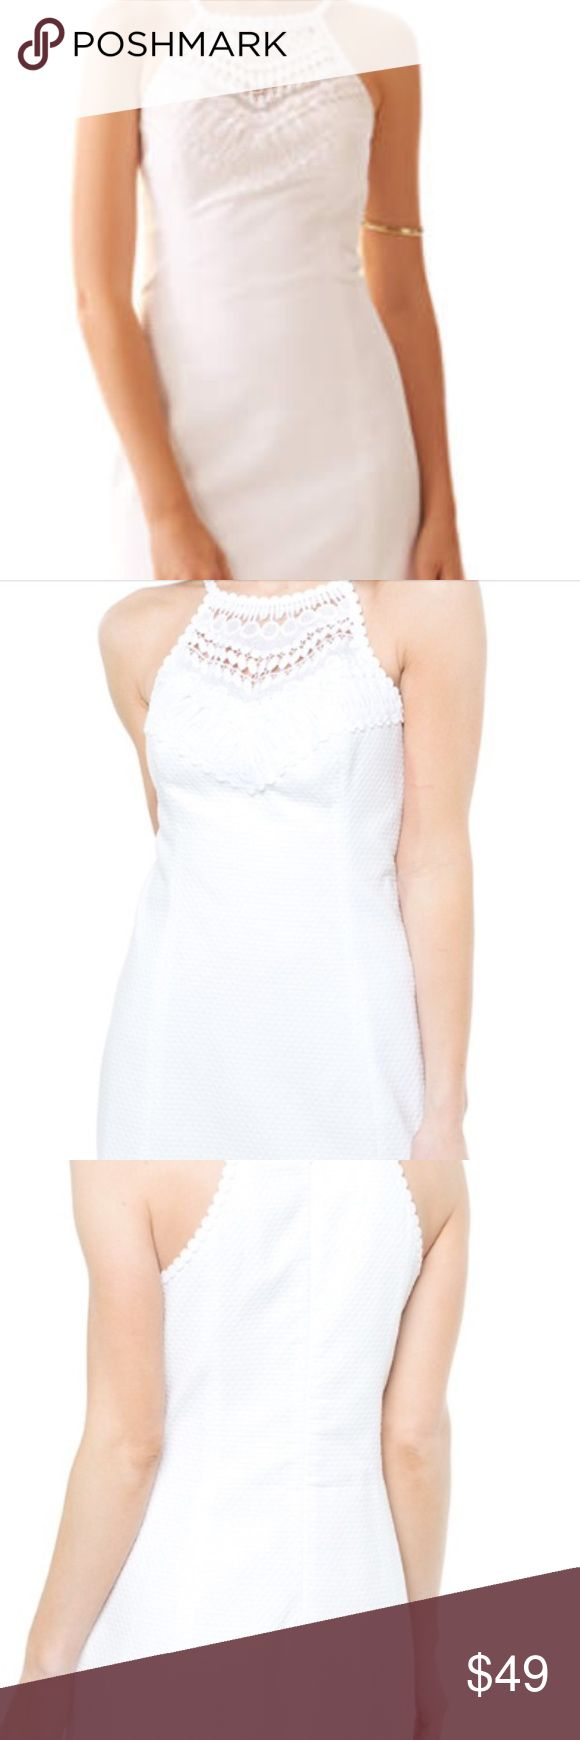 """LILLY PULITZER PEARL LACE NECK DRESS The pearl shift is a favorite of the Lilly white dress collection. This dress is timeless so you'll be able to wear it for years to come. Shift Dress With A Lace Neckpiece. 18"""" From Natural Waist To Hem. Jumbo Pique (100% Cotton). Machine Washable!!! No stains. Worn once for a few hours. It's a stunning dress and will make heads turn. Lilly Pulitzer Dresses"""